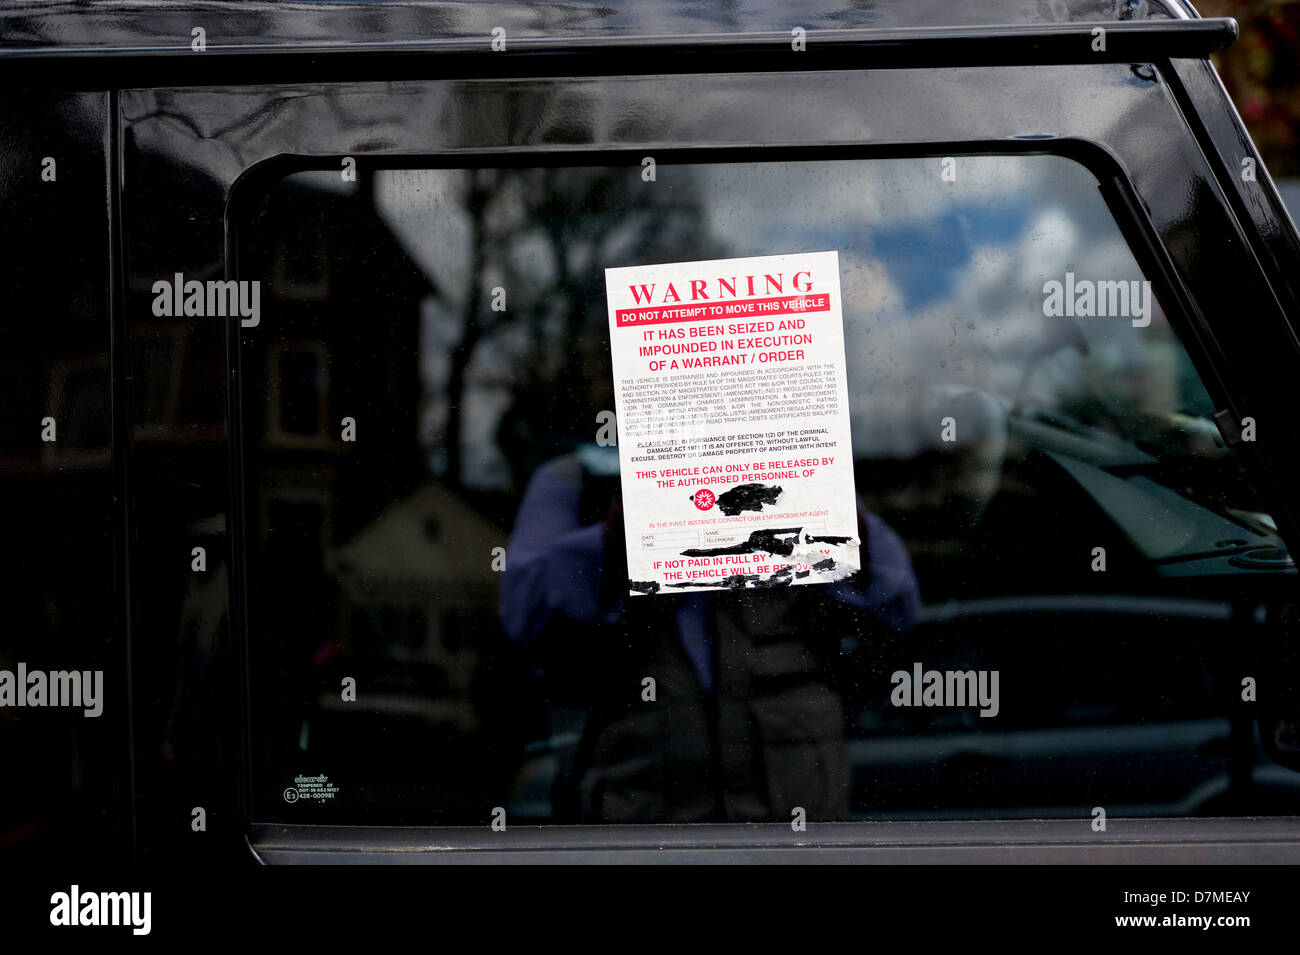 Warning this not abandoned Vehicle Car Van Bedroom Wall Window Decal Sticker